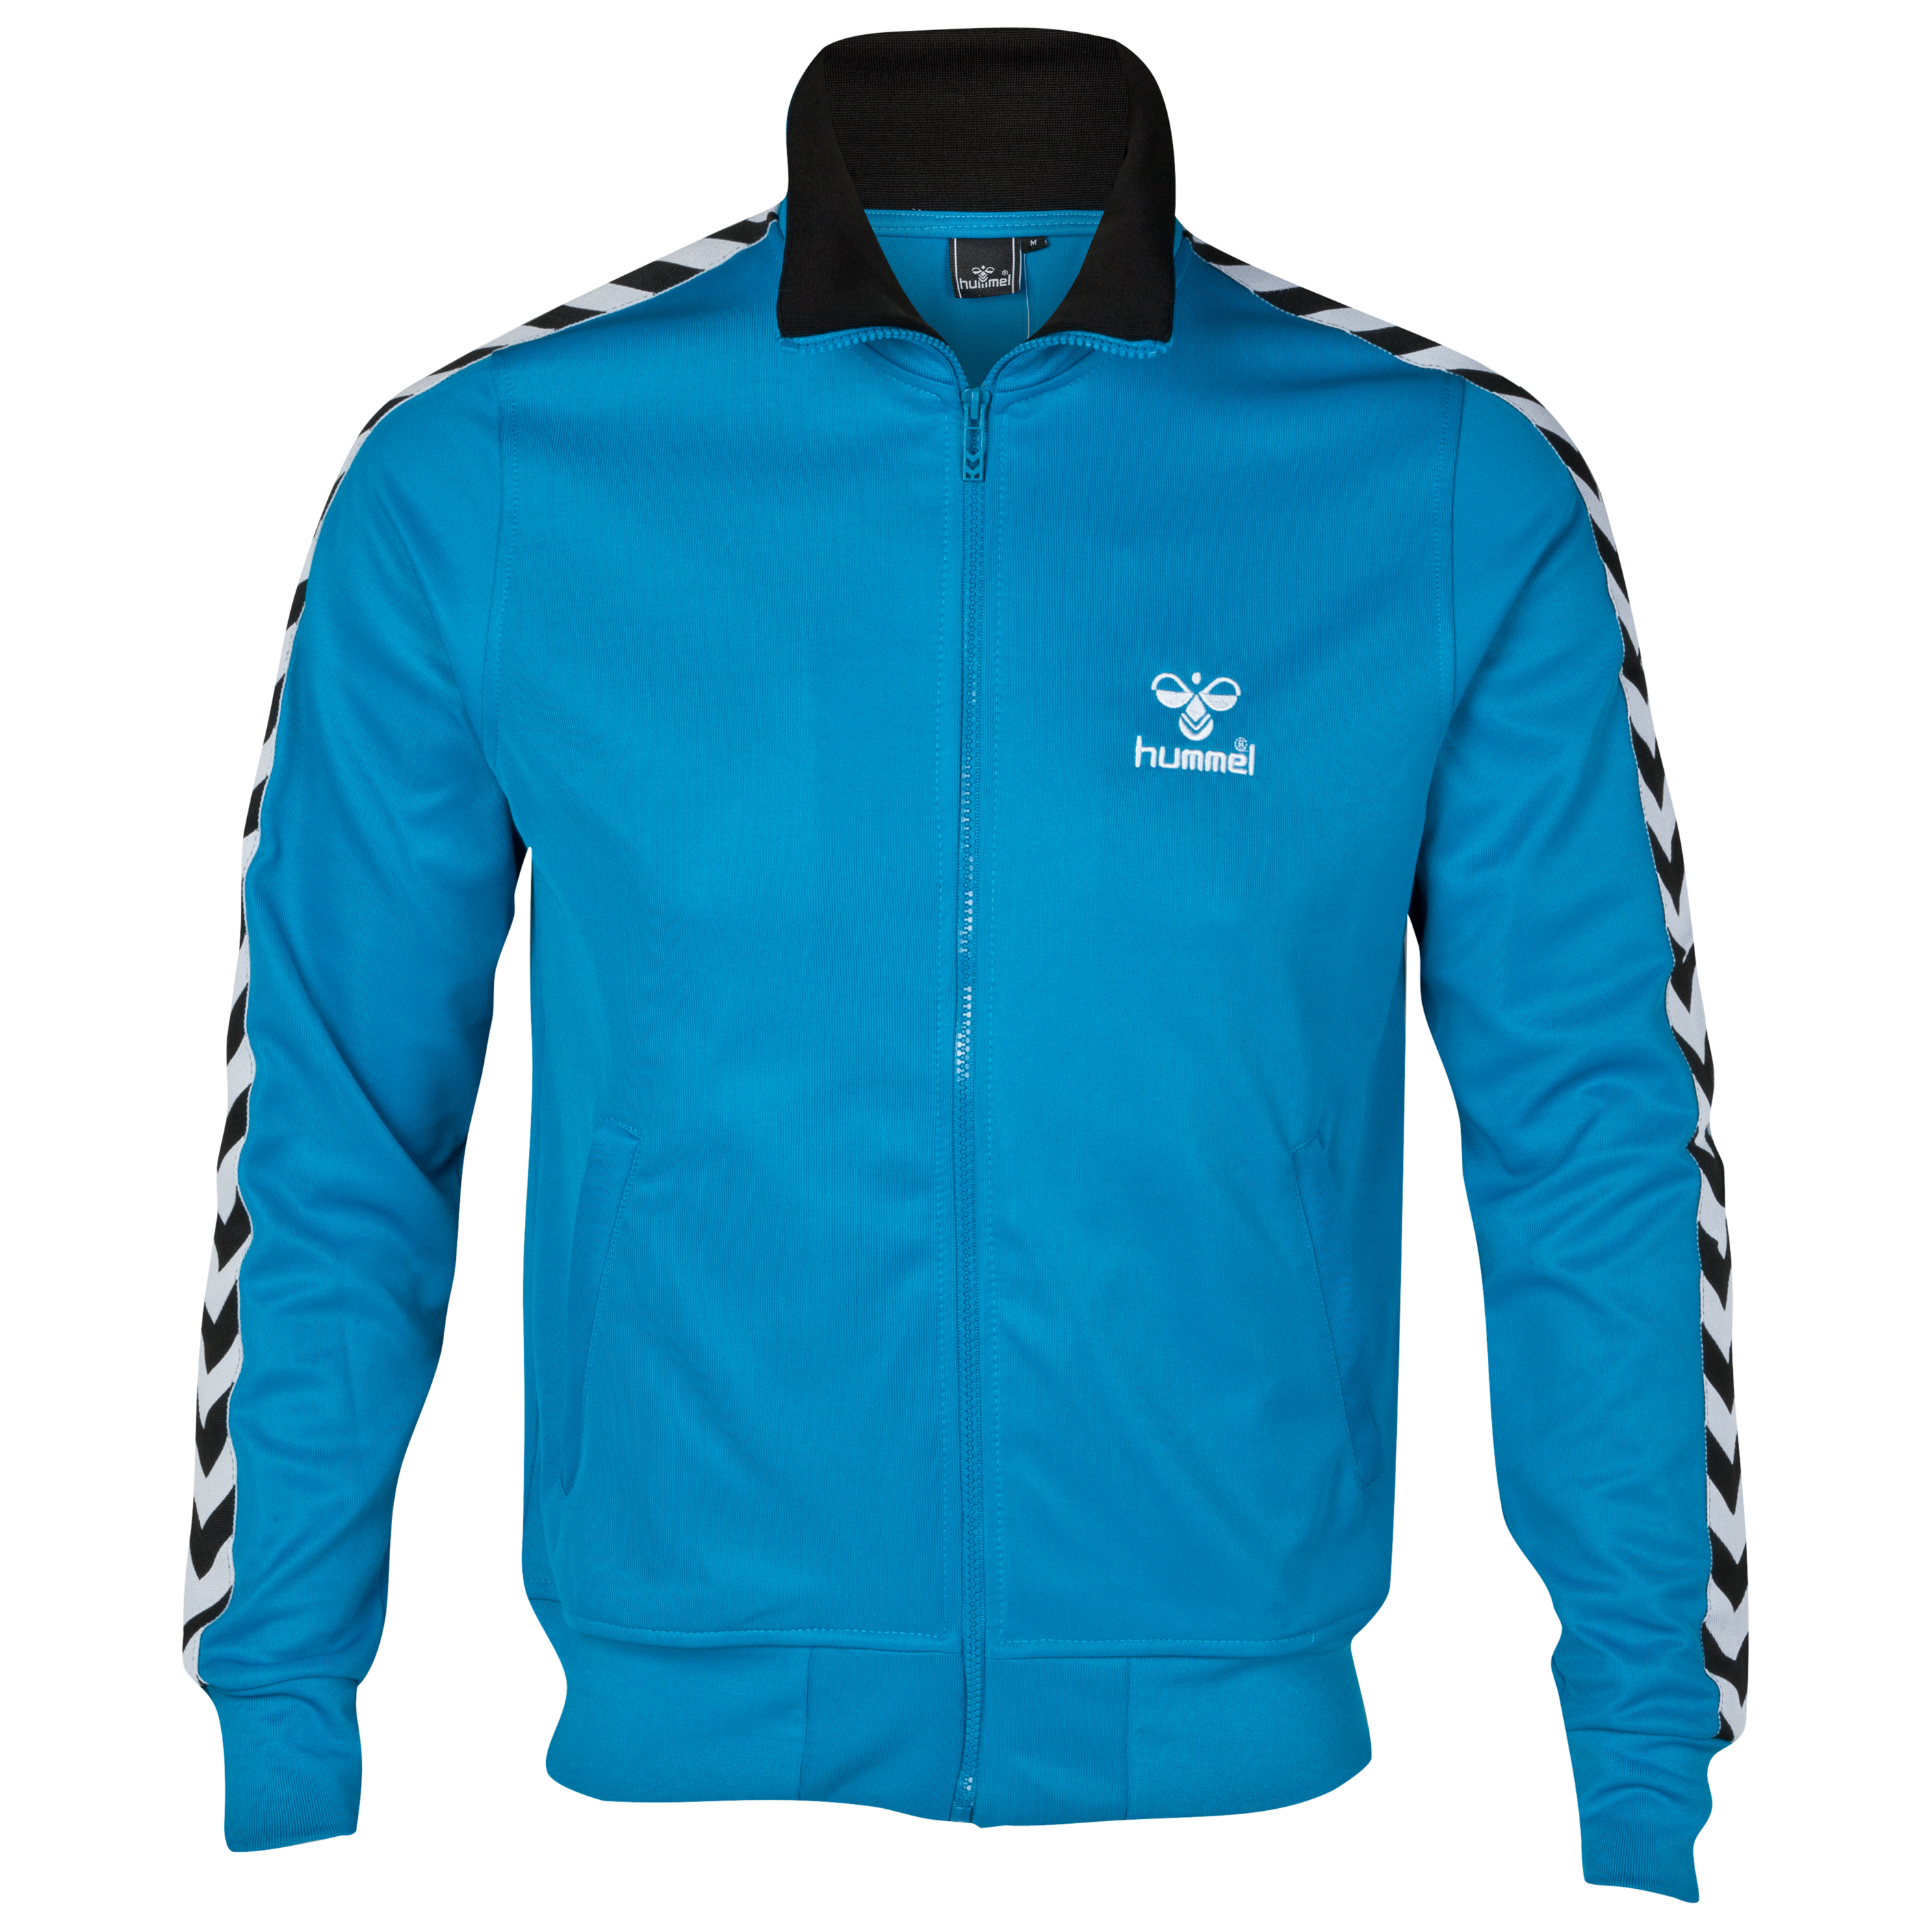 Hummel Atlantic Zip Track Jacket - Methyl Blue